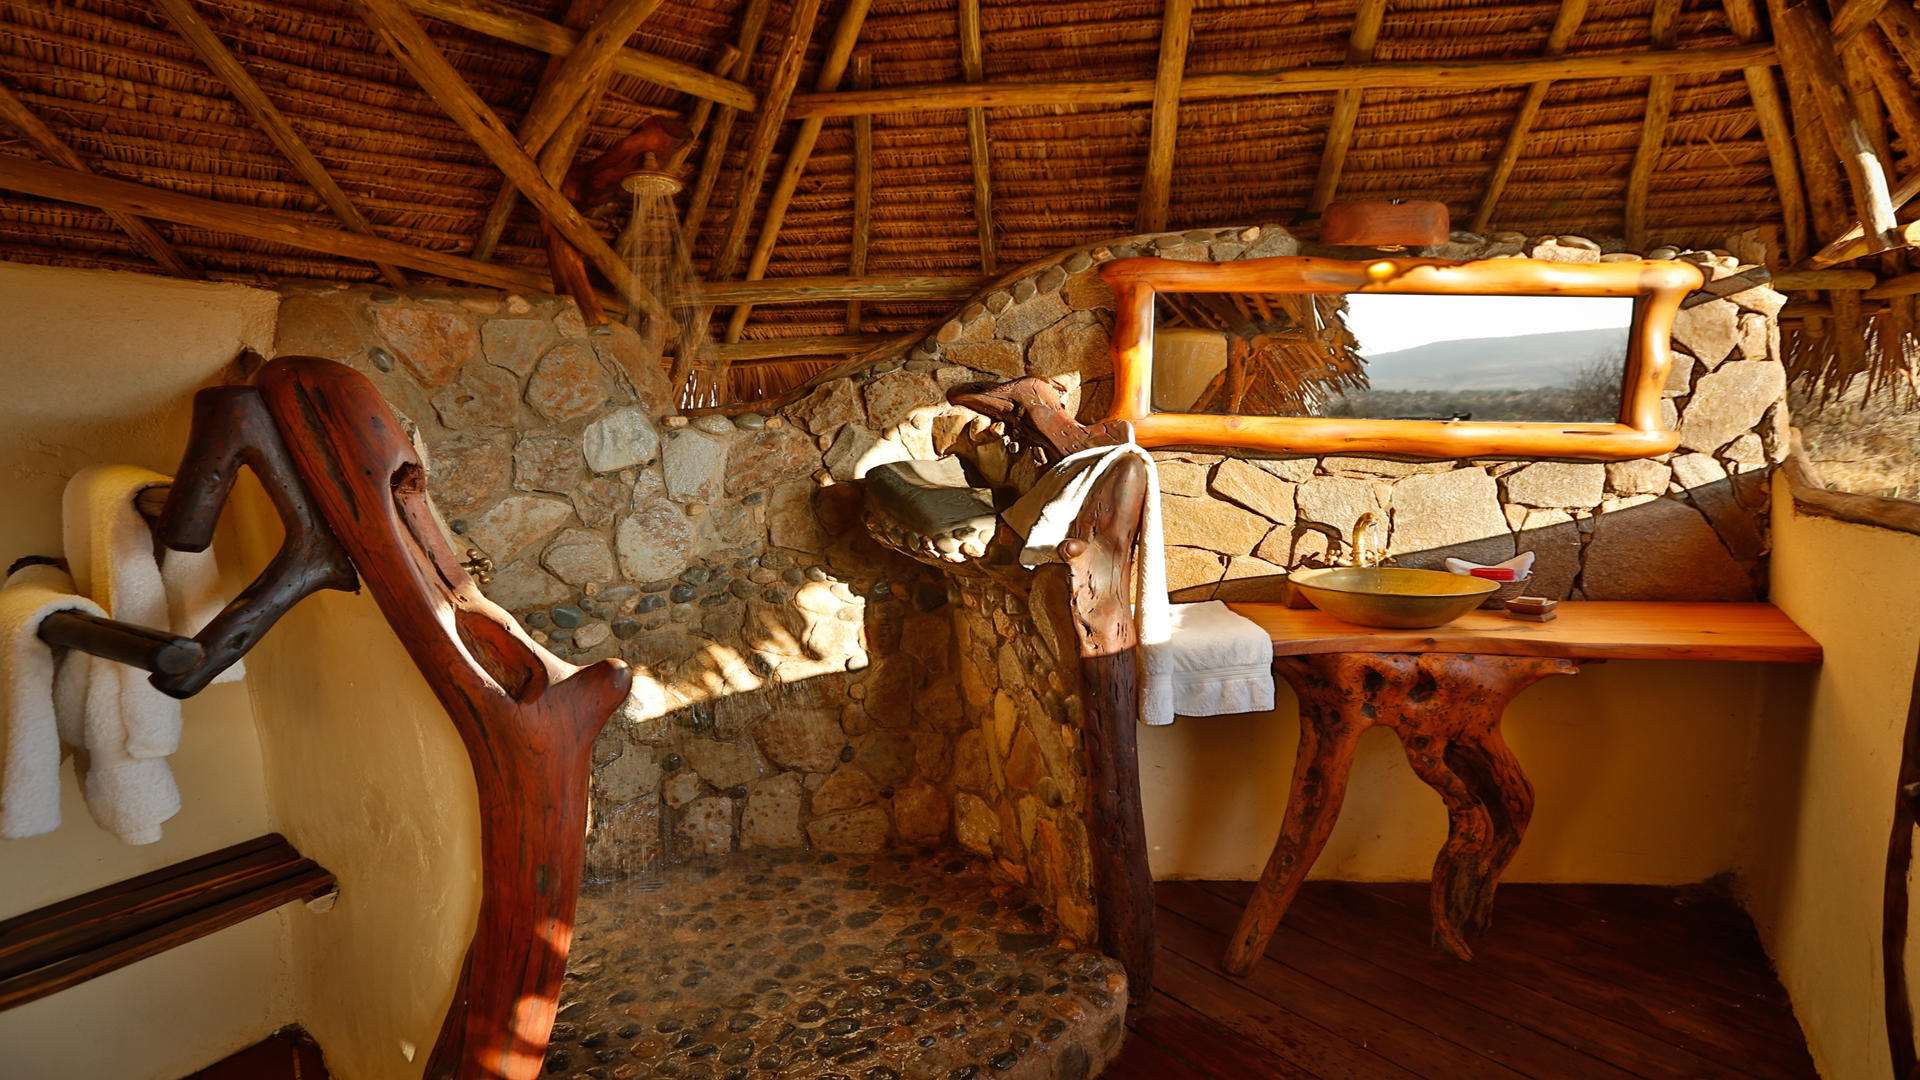 Loisaba---Kiboko-Star-Beds---Accommodation---Bathroom